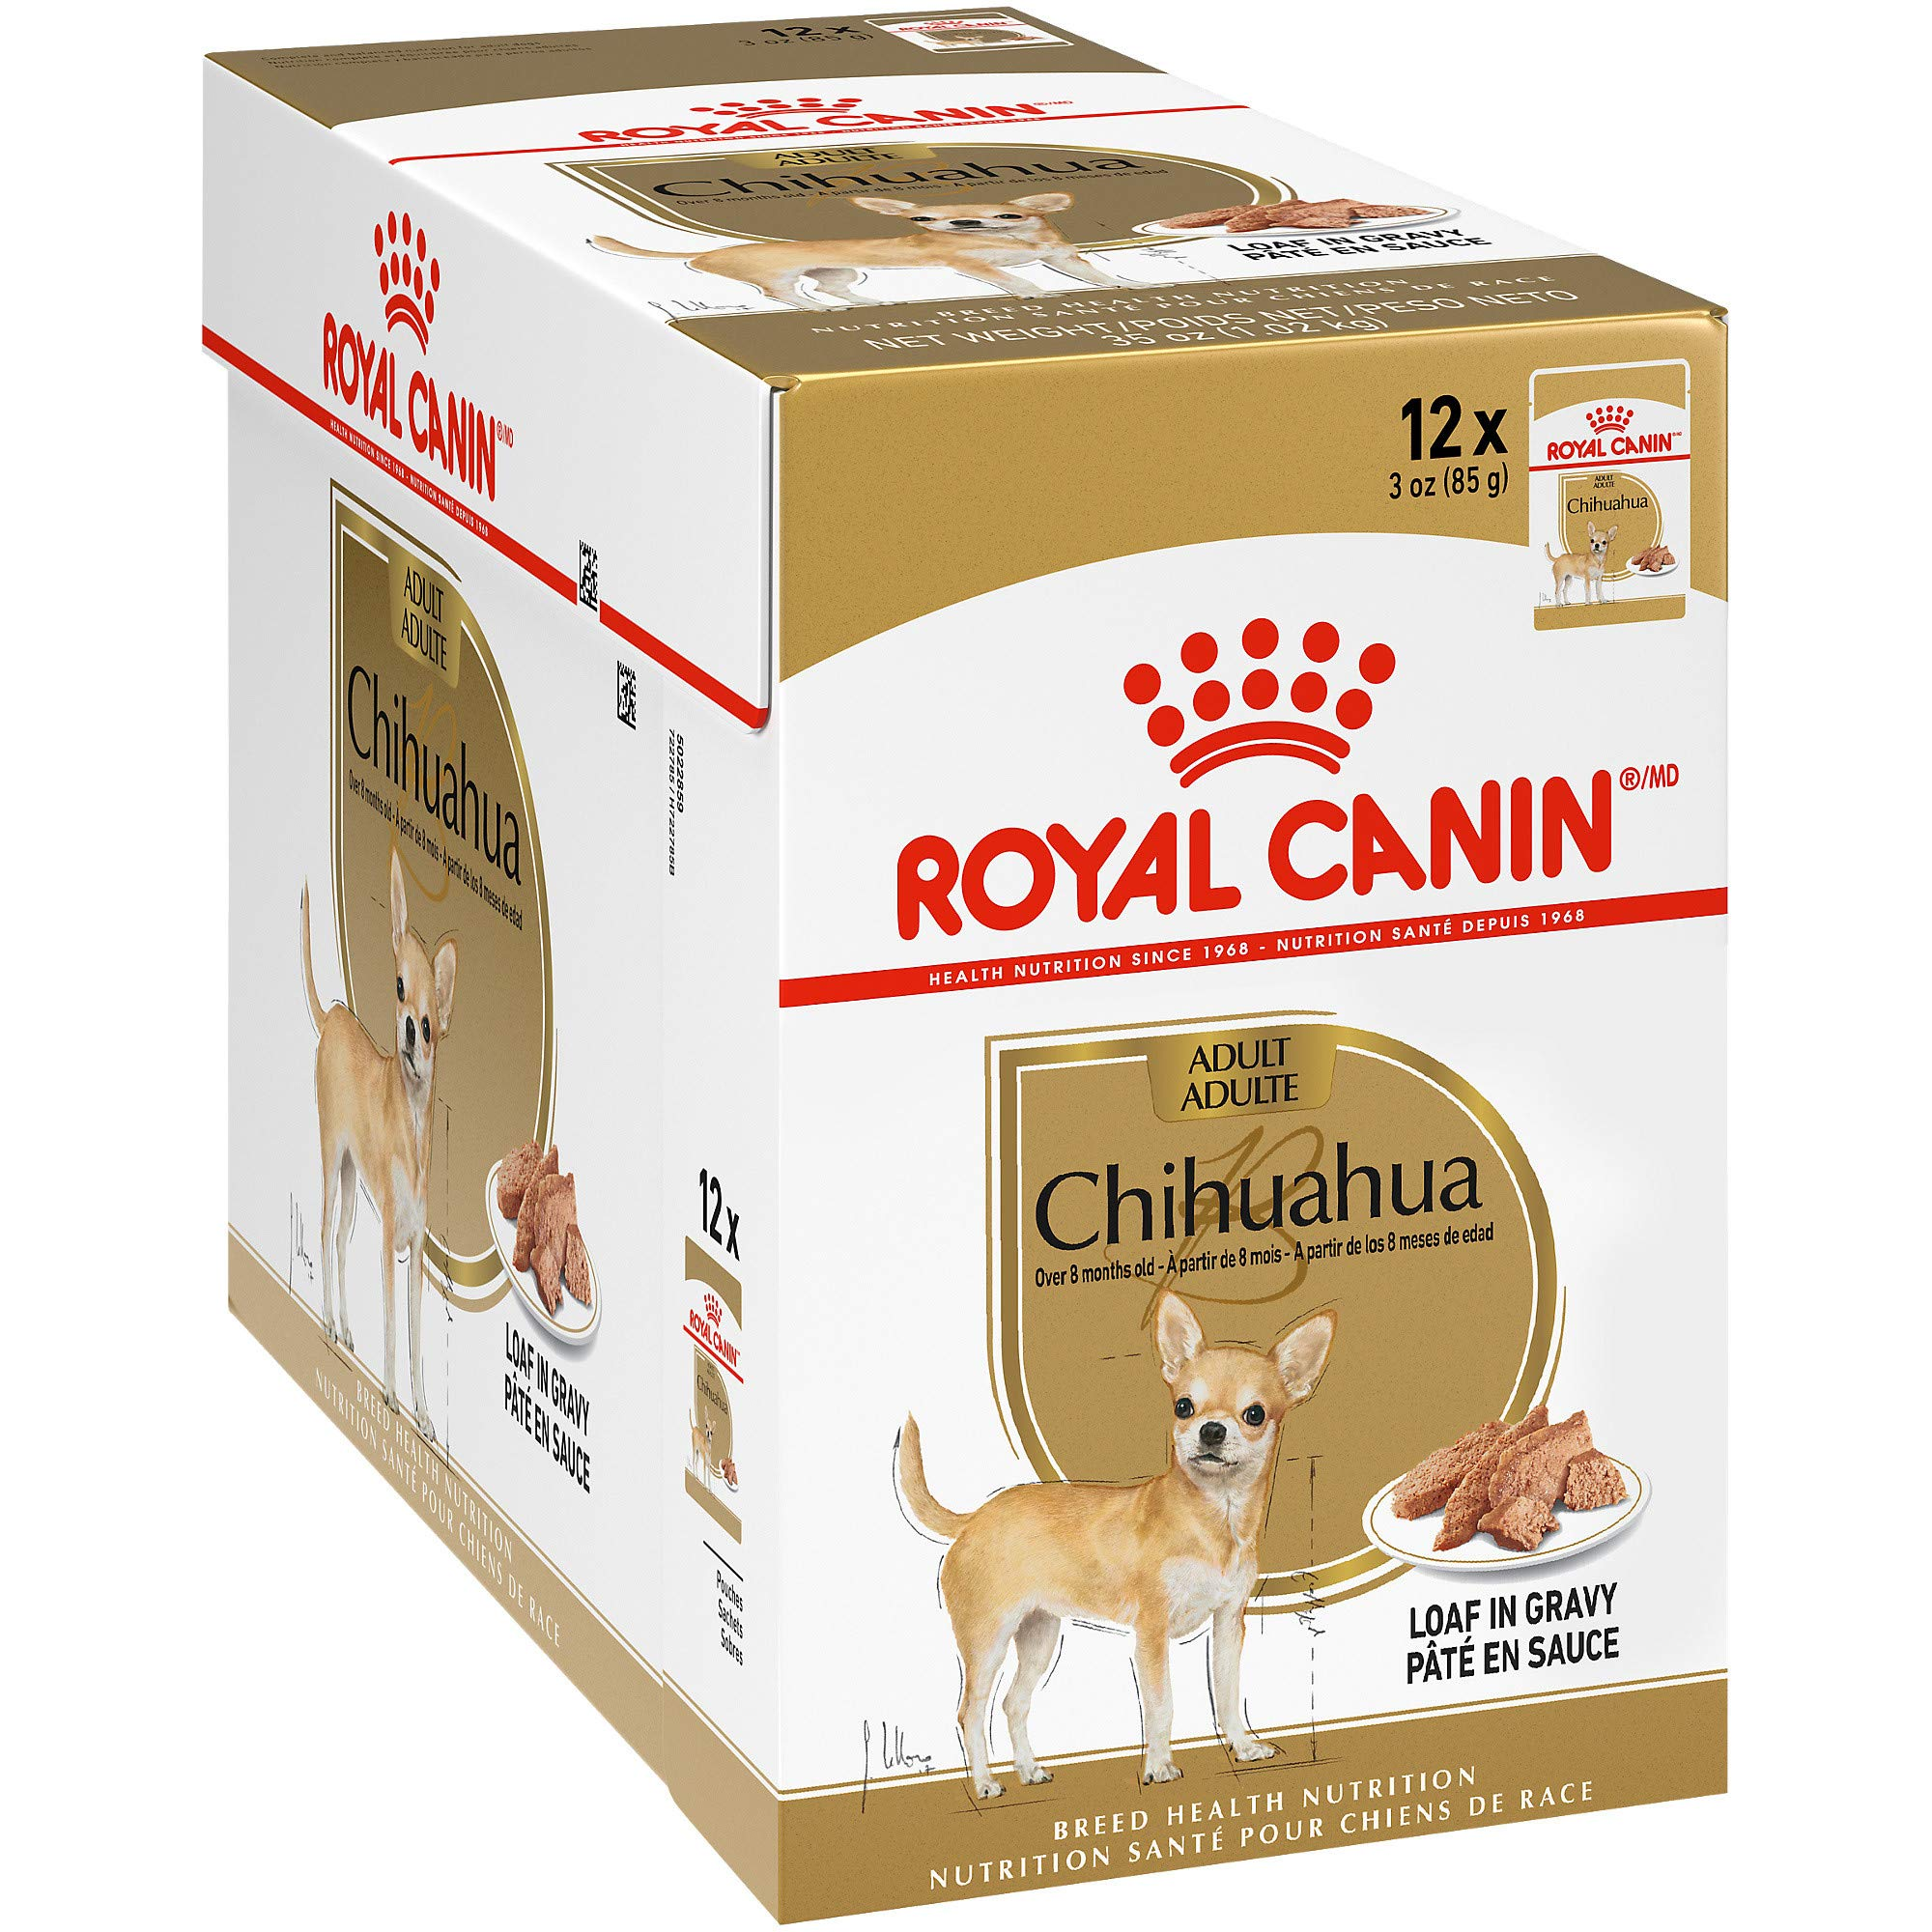 Royal Canin Breed Health Nutrition Chihuahua Loaf in Gravy Pouch Dog Food, 3 oz Pouch (Pack of 12) by Royal Canin